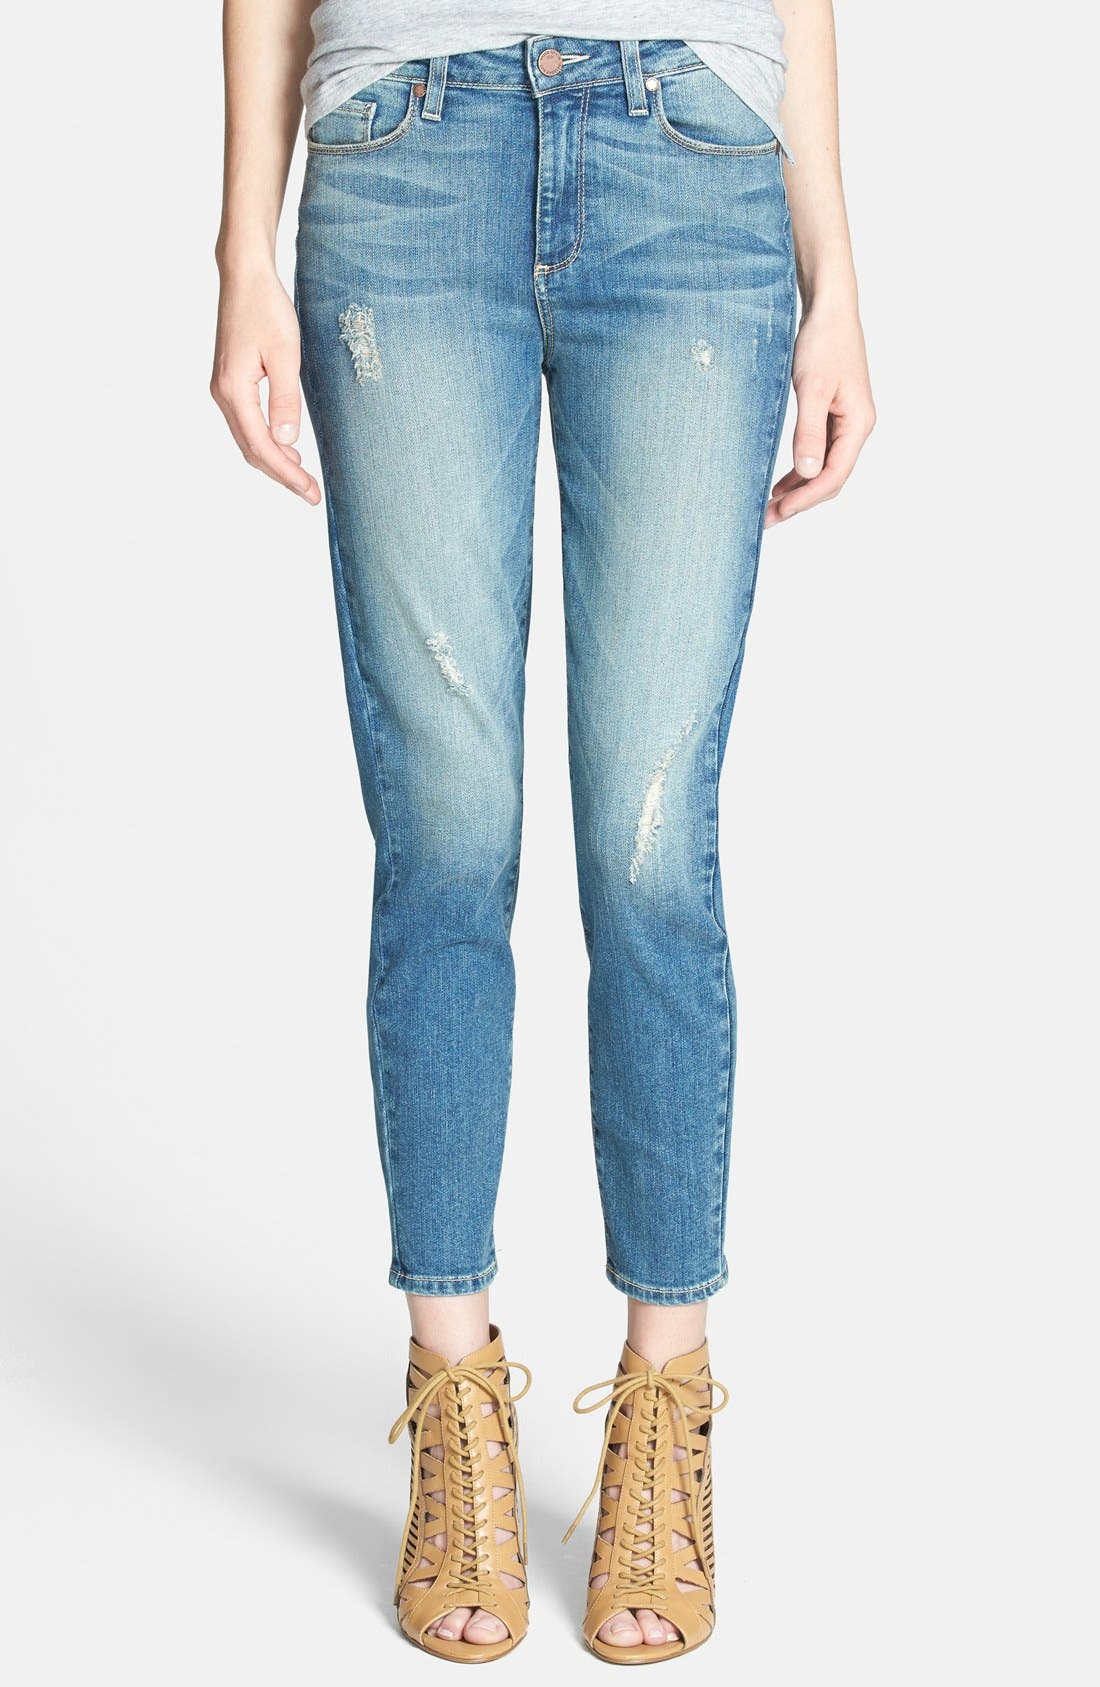 Alternate Image 1 Selected - Paige Denim 'Hoxton' Distressed High Rise Crop Jeans